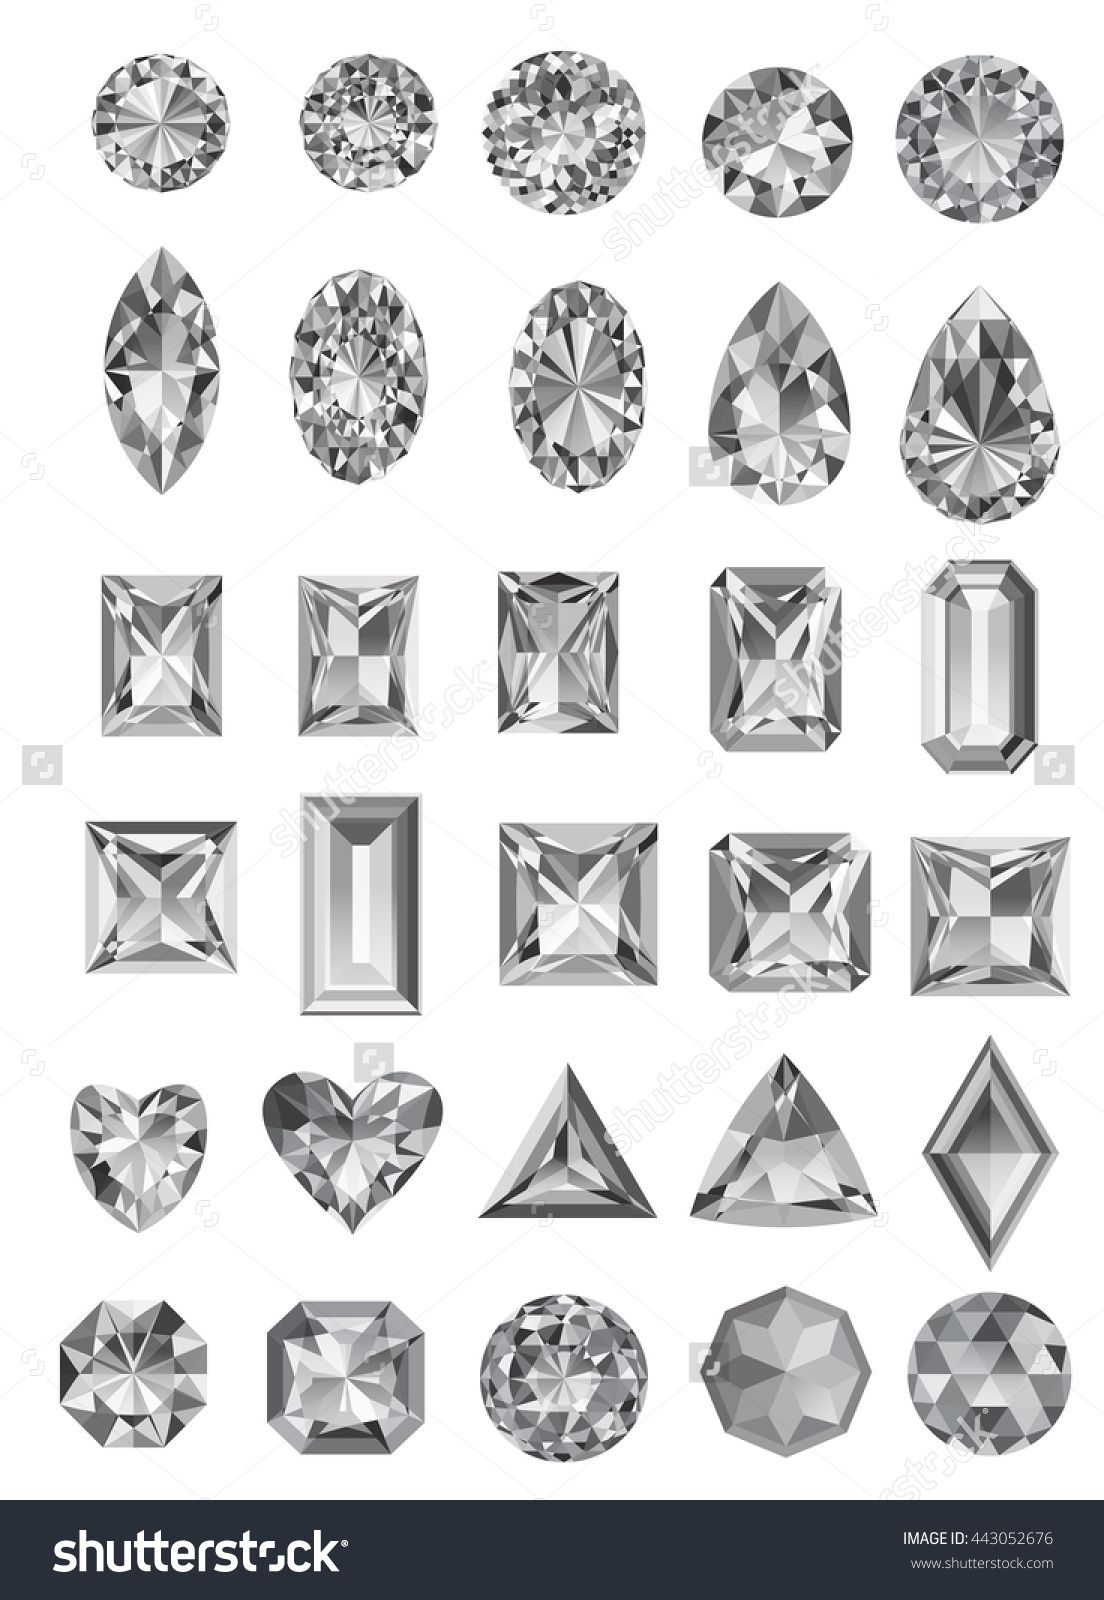 vector transparent download Pin on Jewels